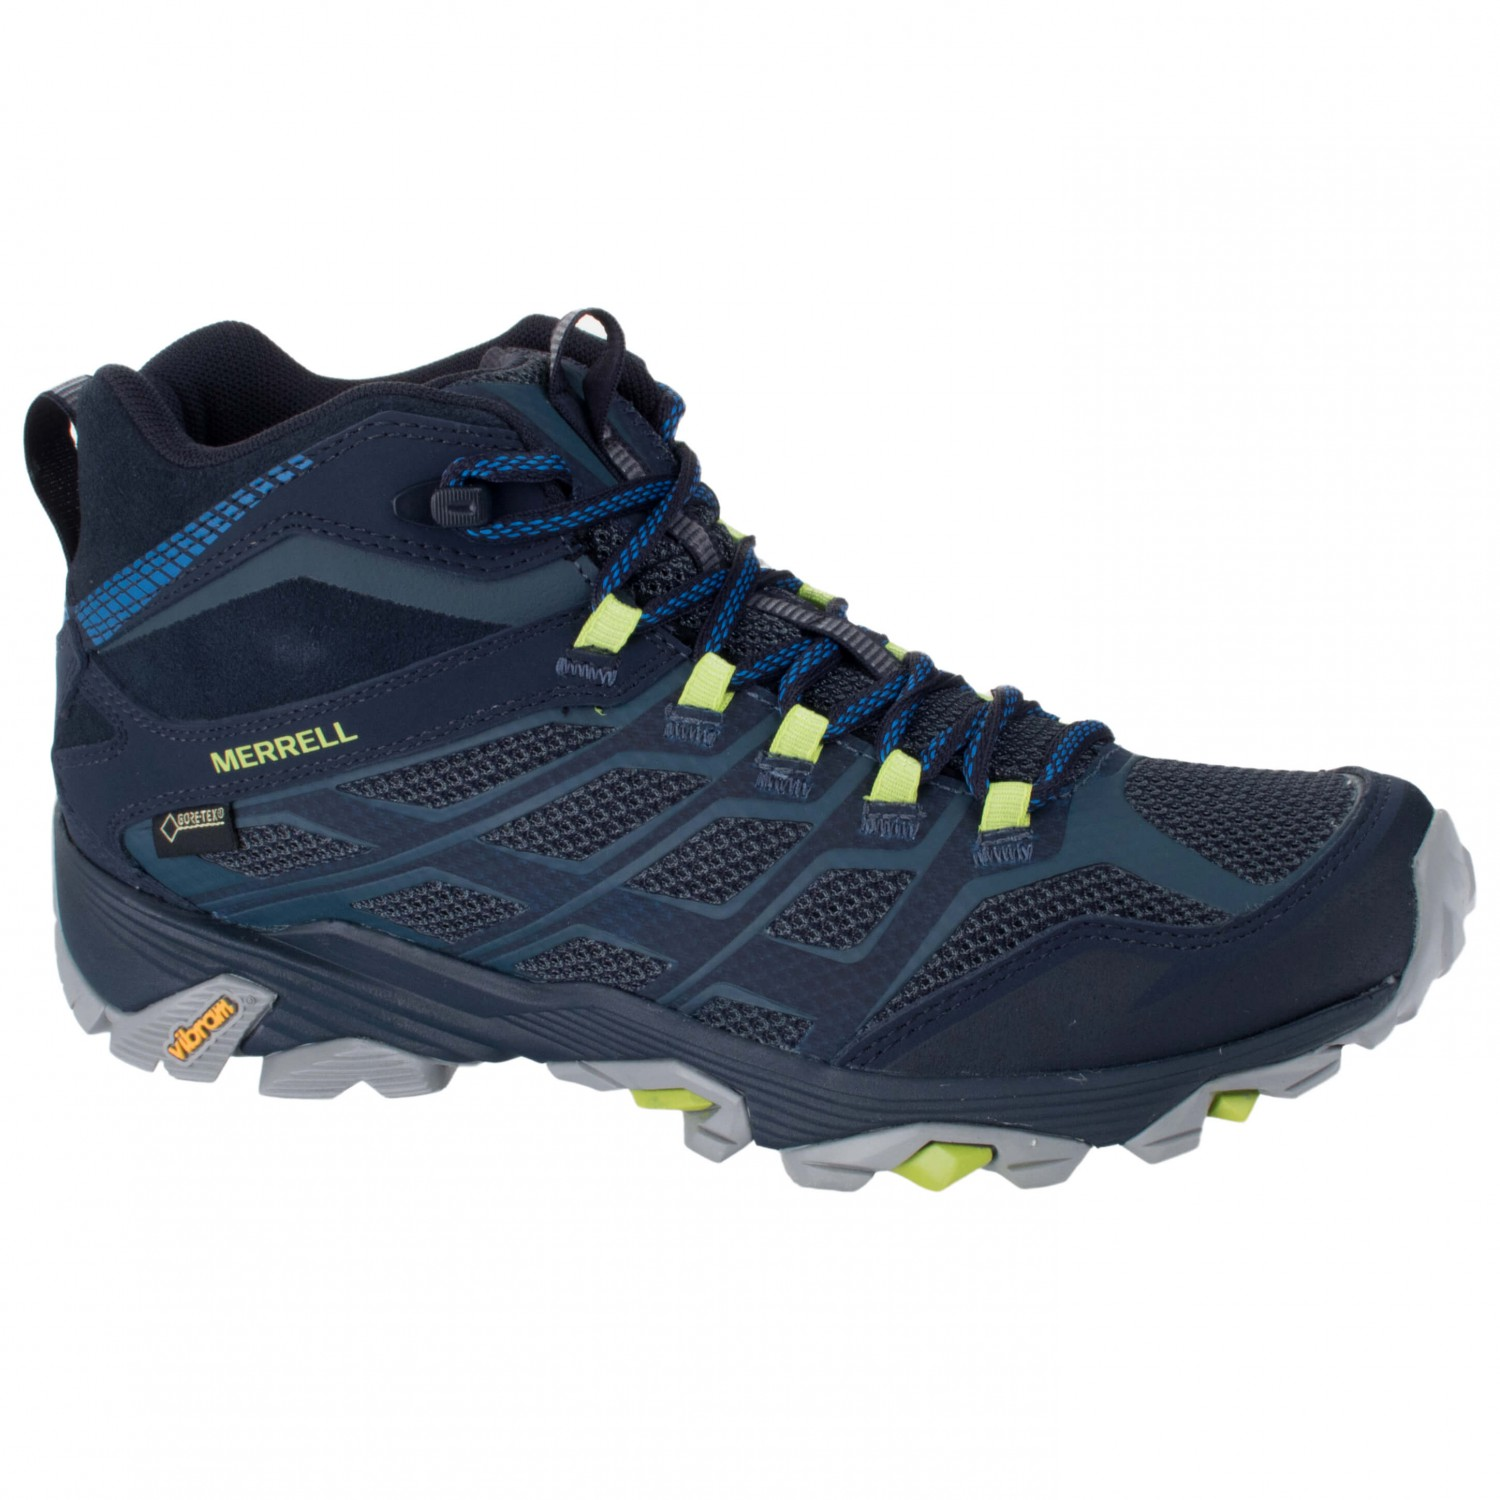 merrell moab fst mid gore tex chaussures de randonn e homme livraison gratuite. Black Bedroom Furniture Sets. Home Design Ideas